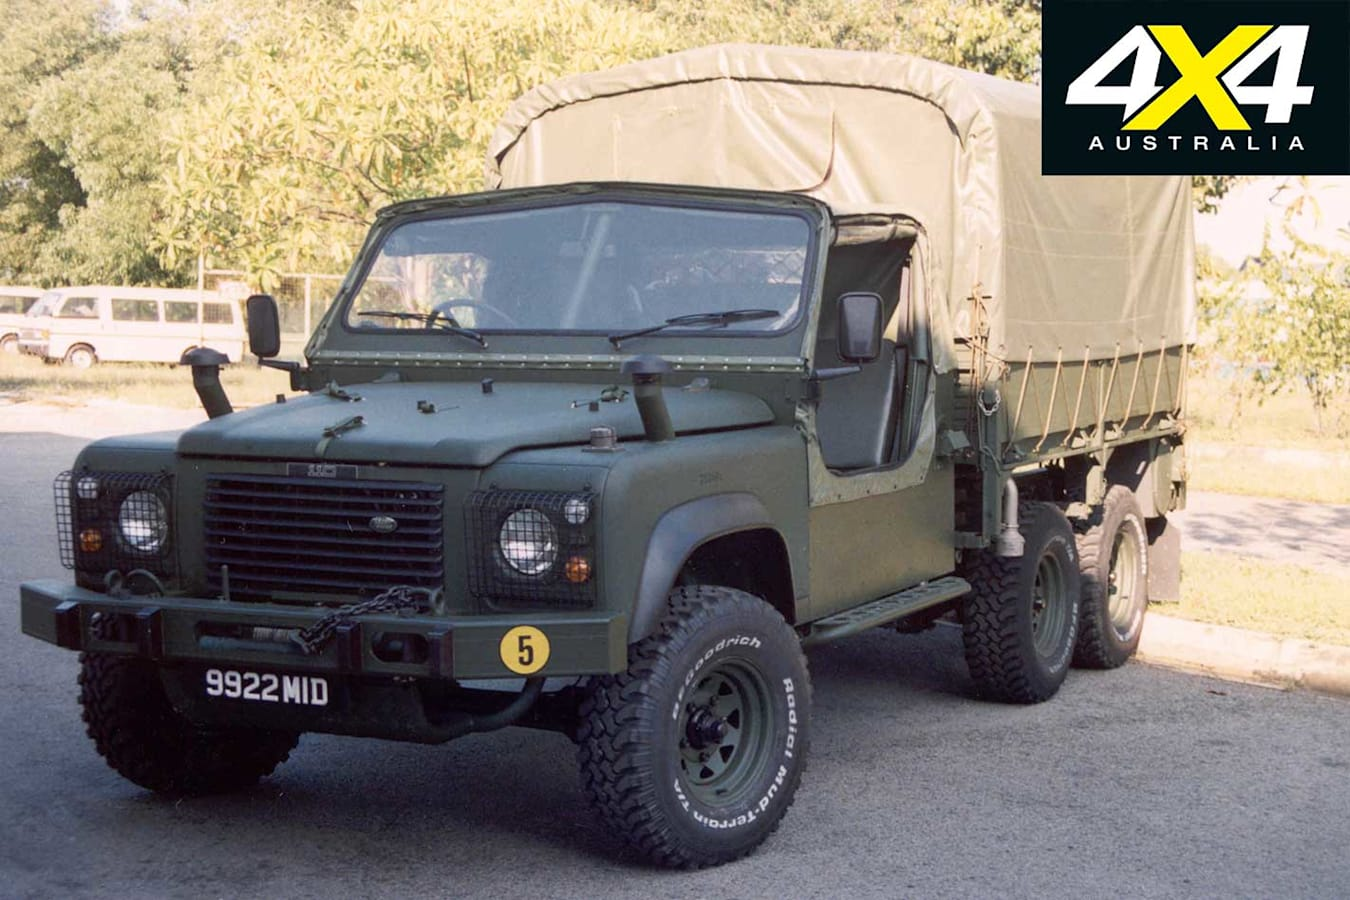 70 Years Of Land Rover 6 X 6 Military Land Rover Carrier Jpg